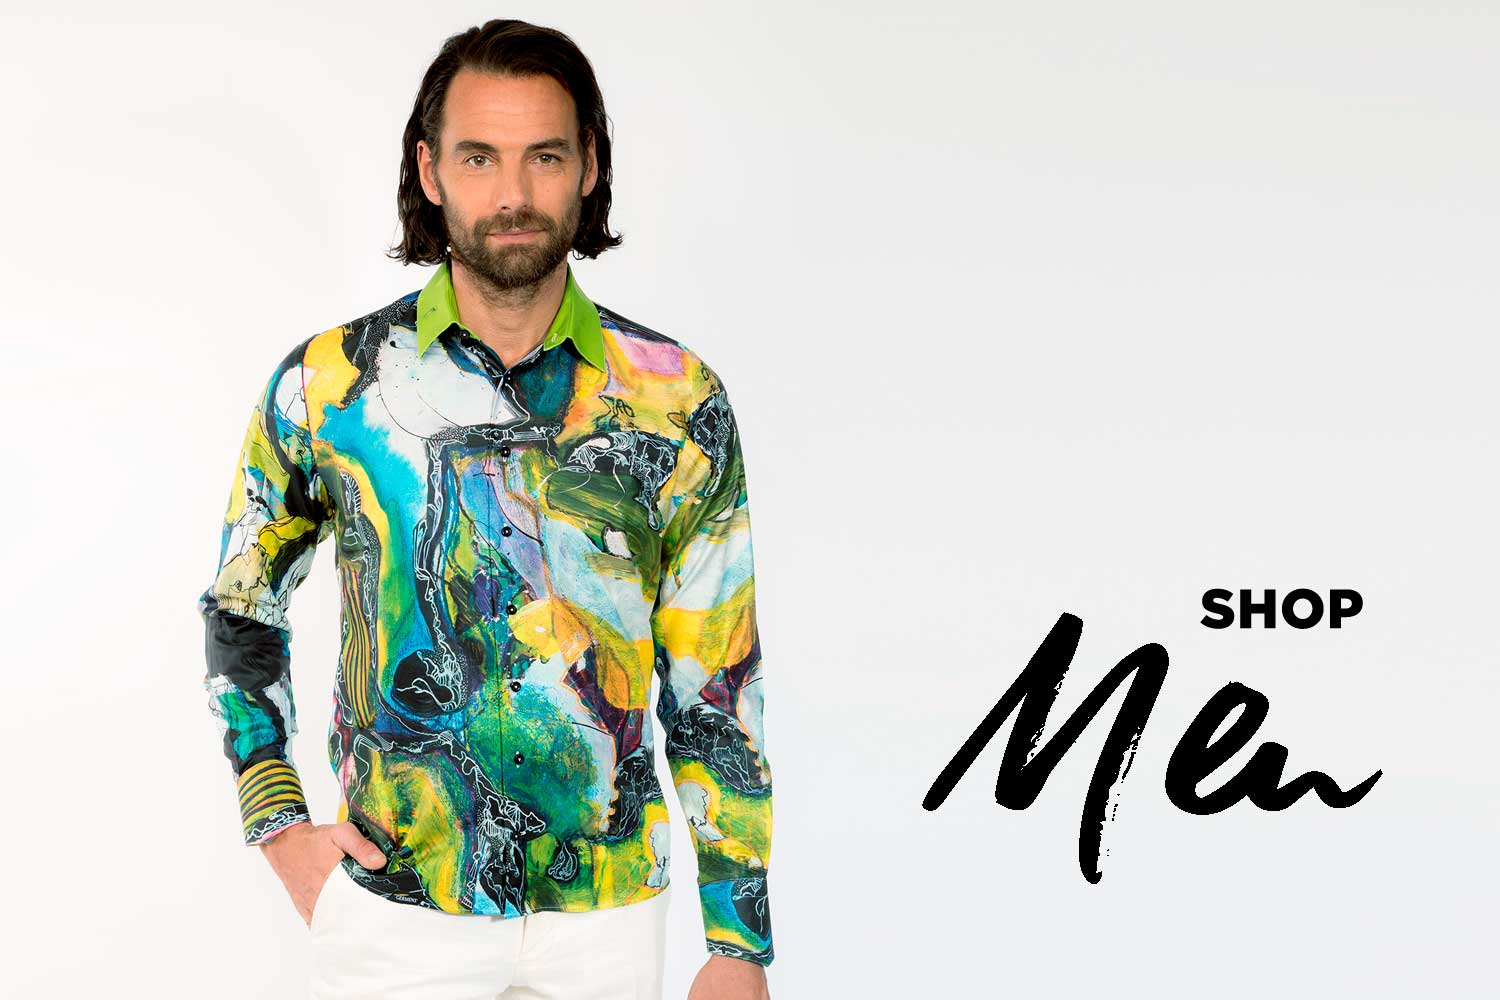 Germens Onlineshop Mensfashion